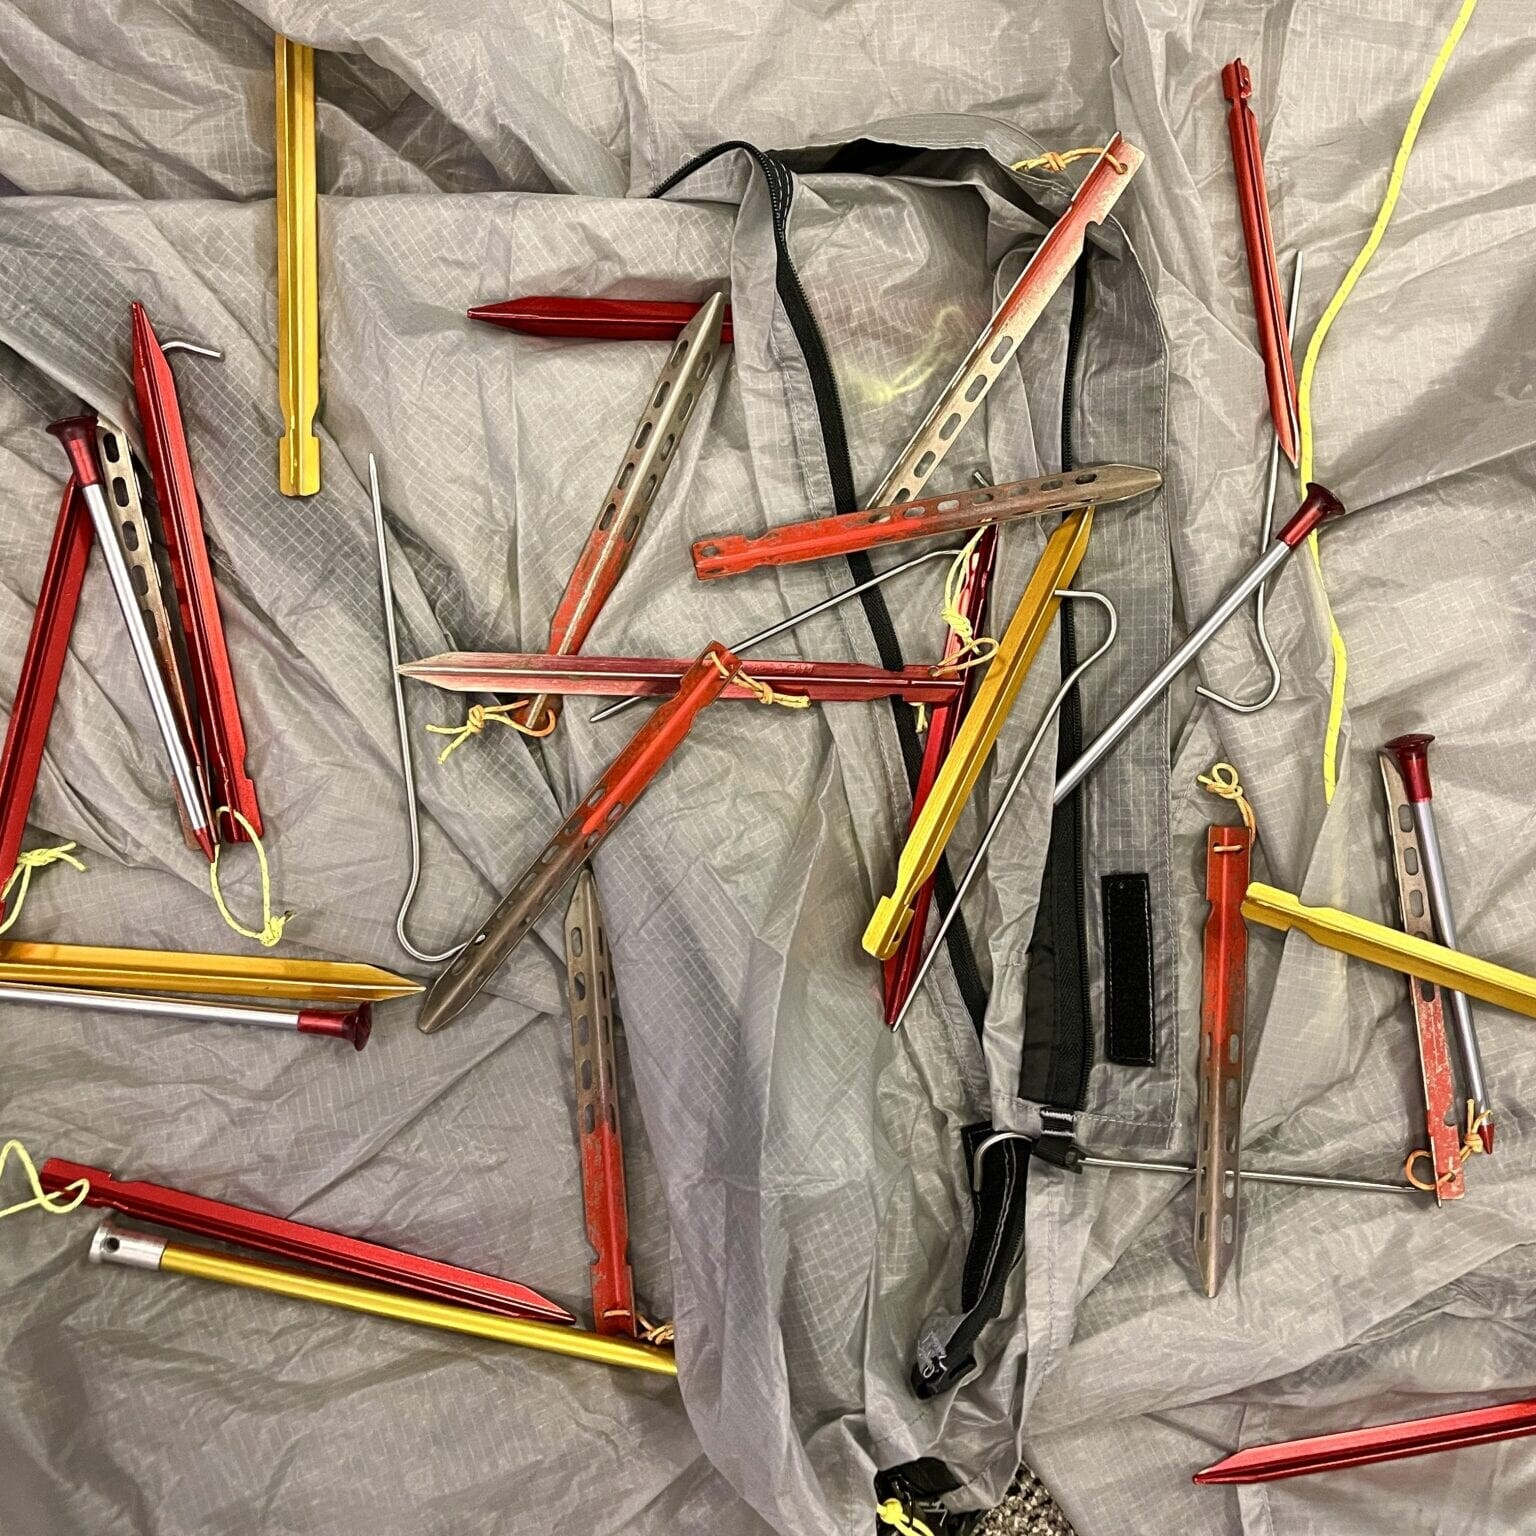 multiple different kinds of tent stakes laid out in a pile